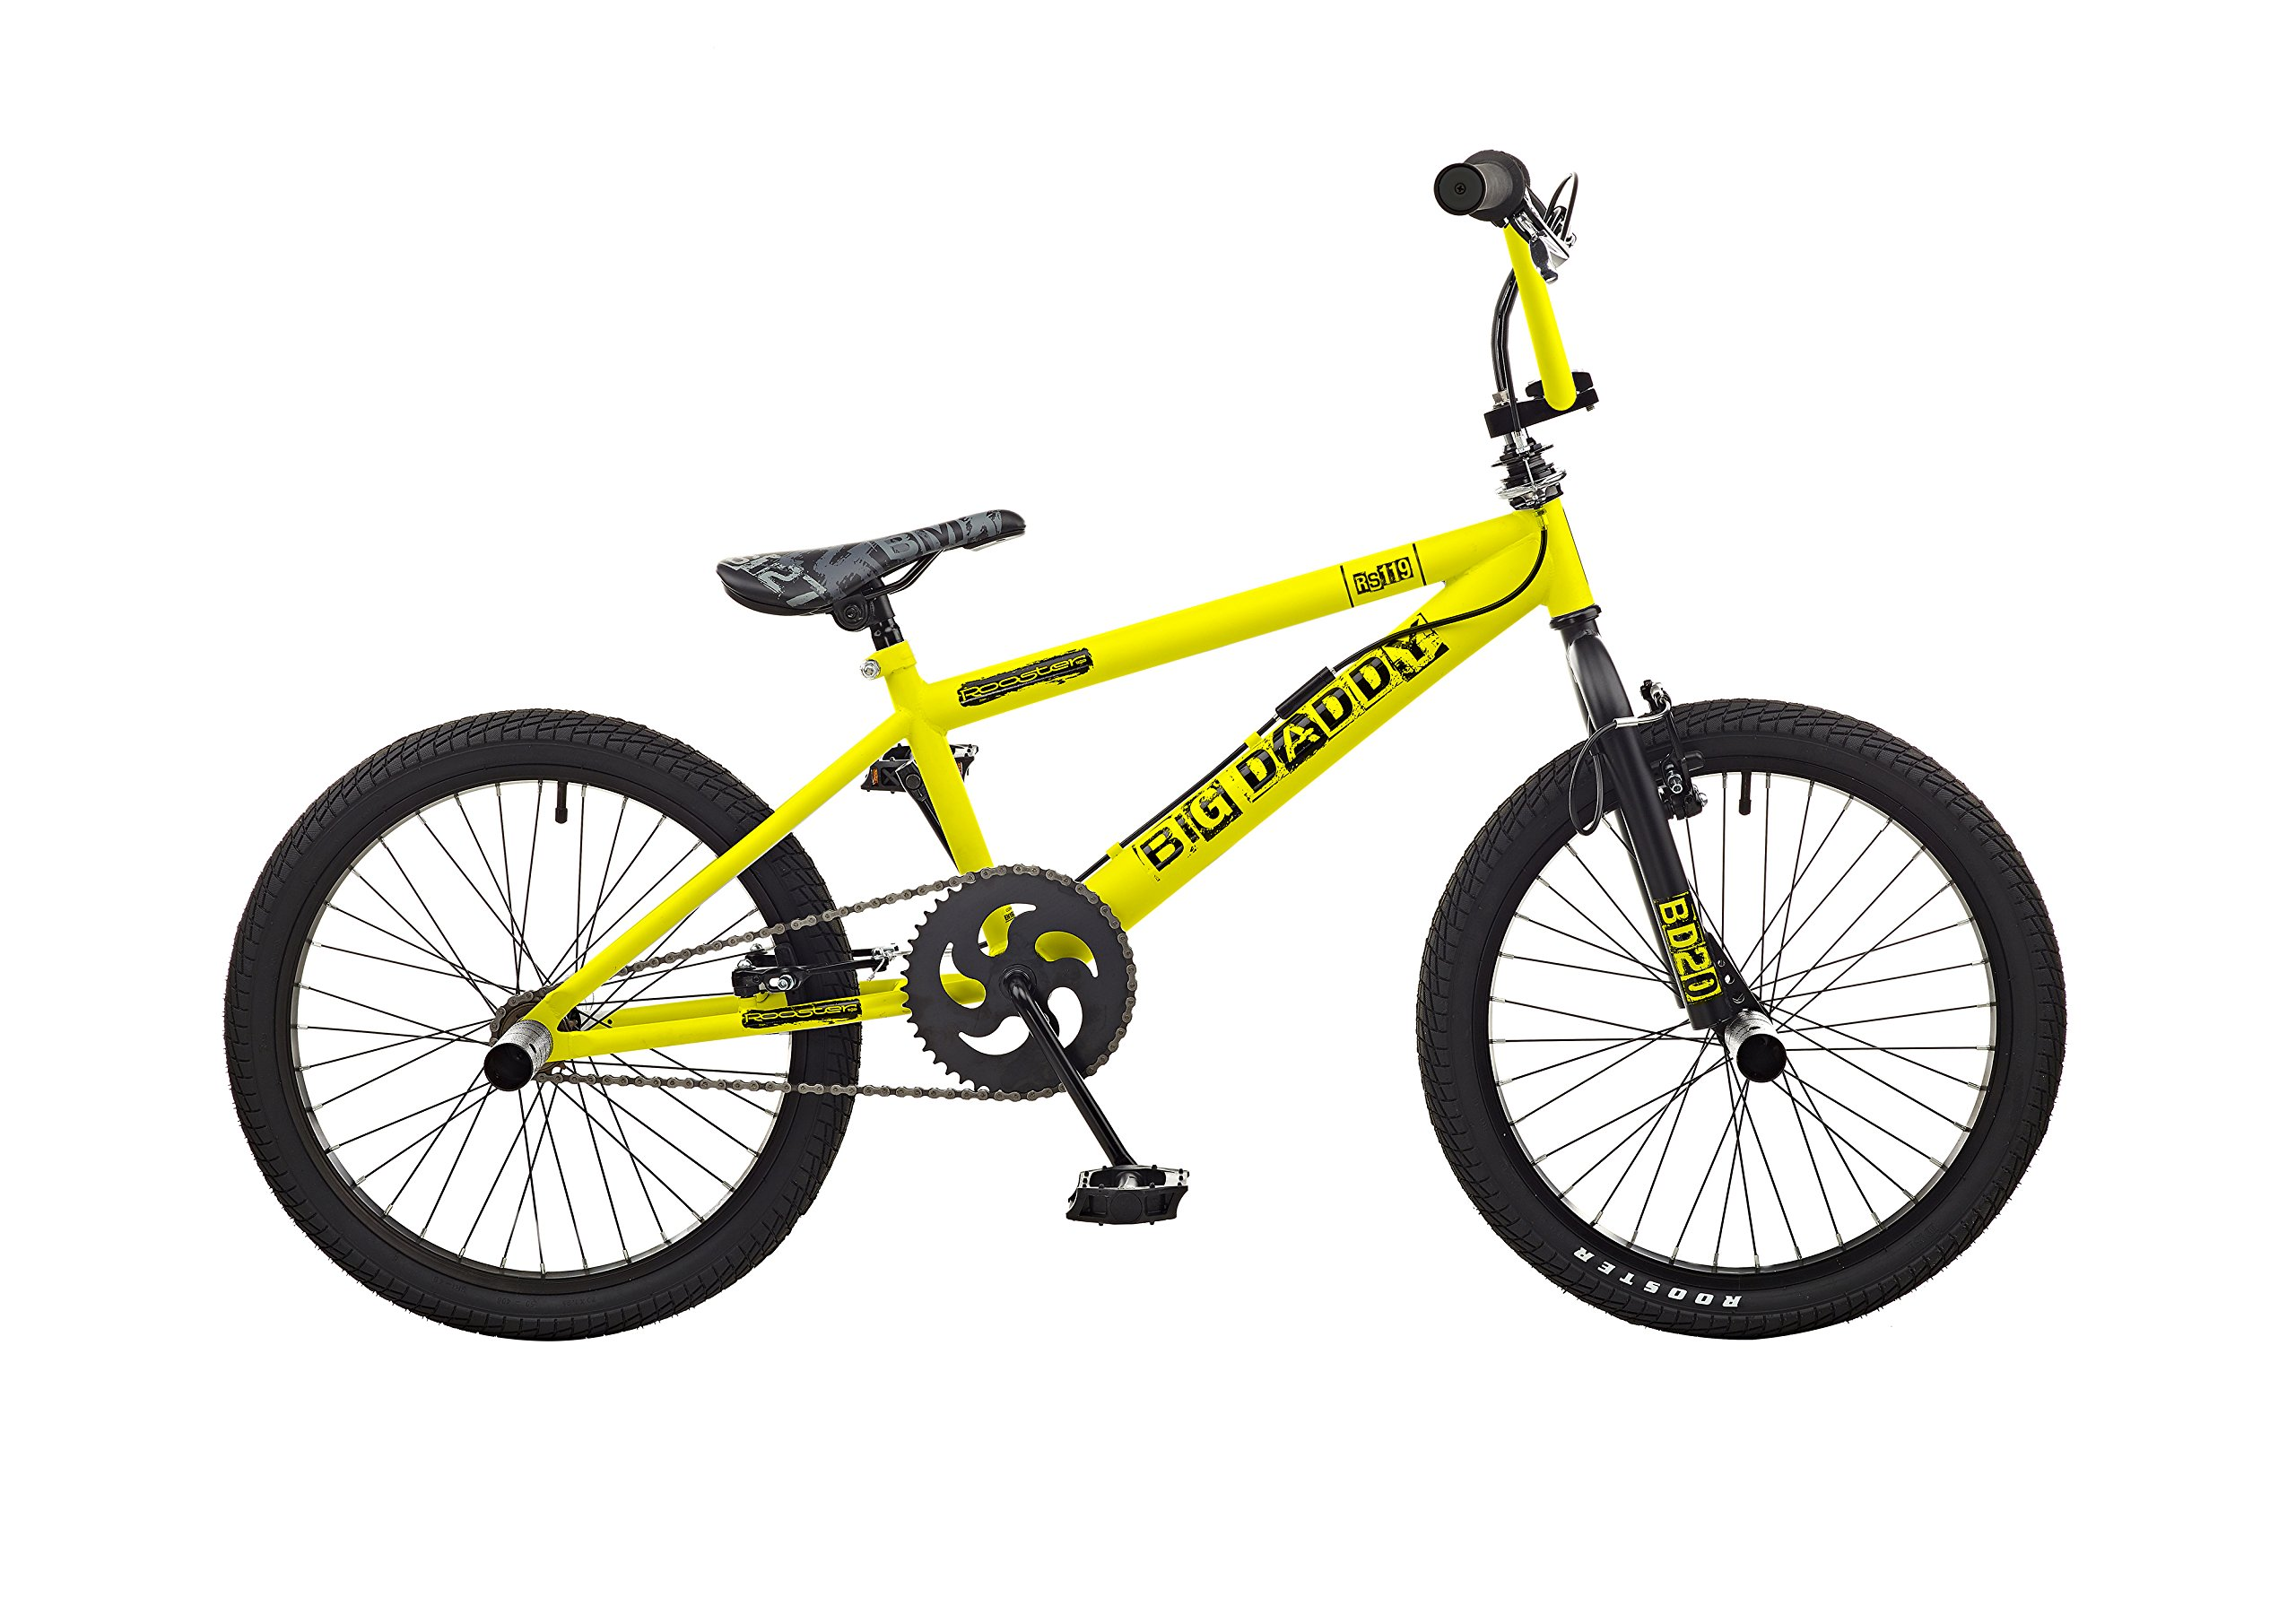 81F9k53lJWL - Rooster Children's Big Daddy Bike